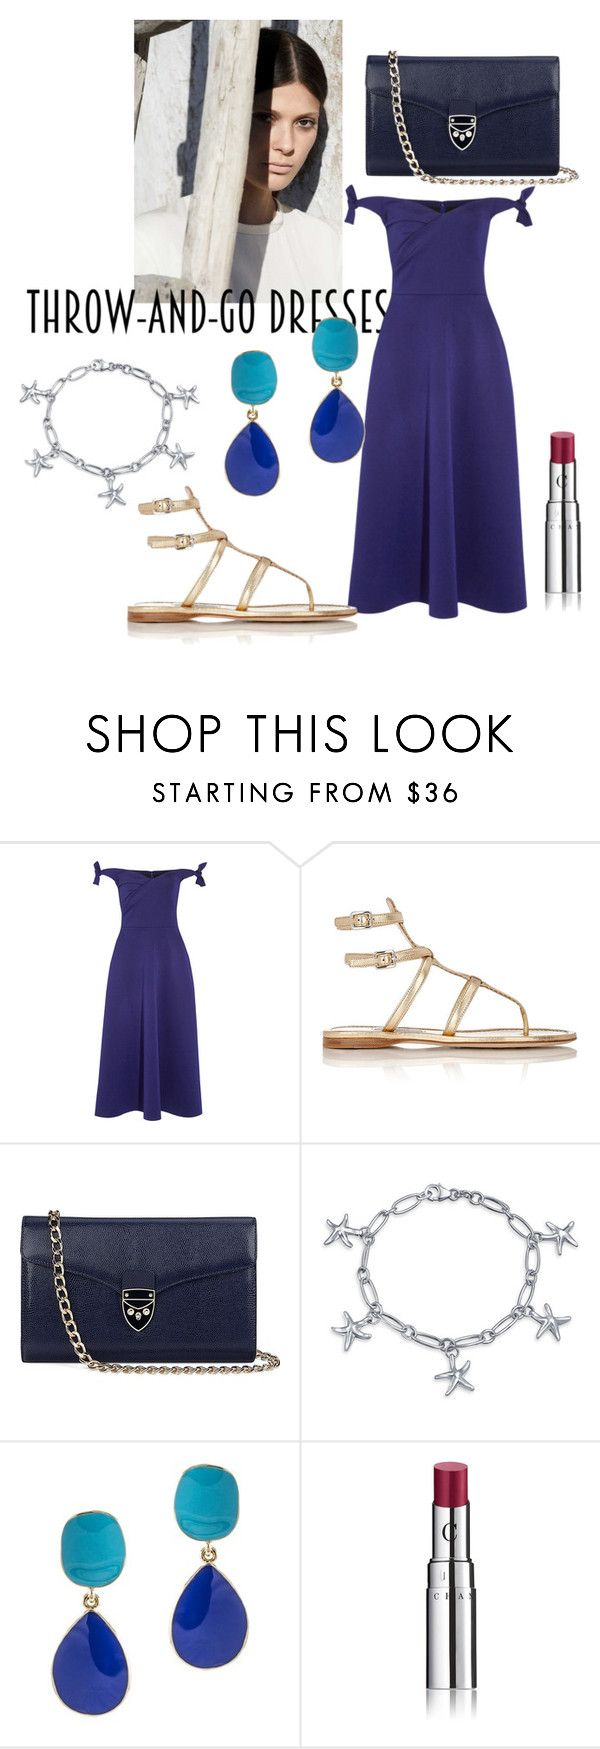 """""""Easy Peasy: Throw-and-Go Dresses"""" by arabellie ❤ liked on Polyvore featuring Saloni, Prada, Aspinal of London, Bling Jewelry, Kenneth Jay Lane, Chantecaille and easypeasy"""